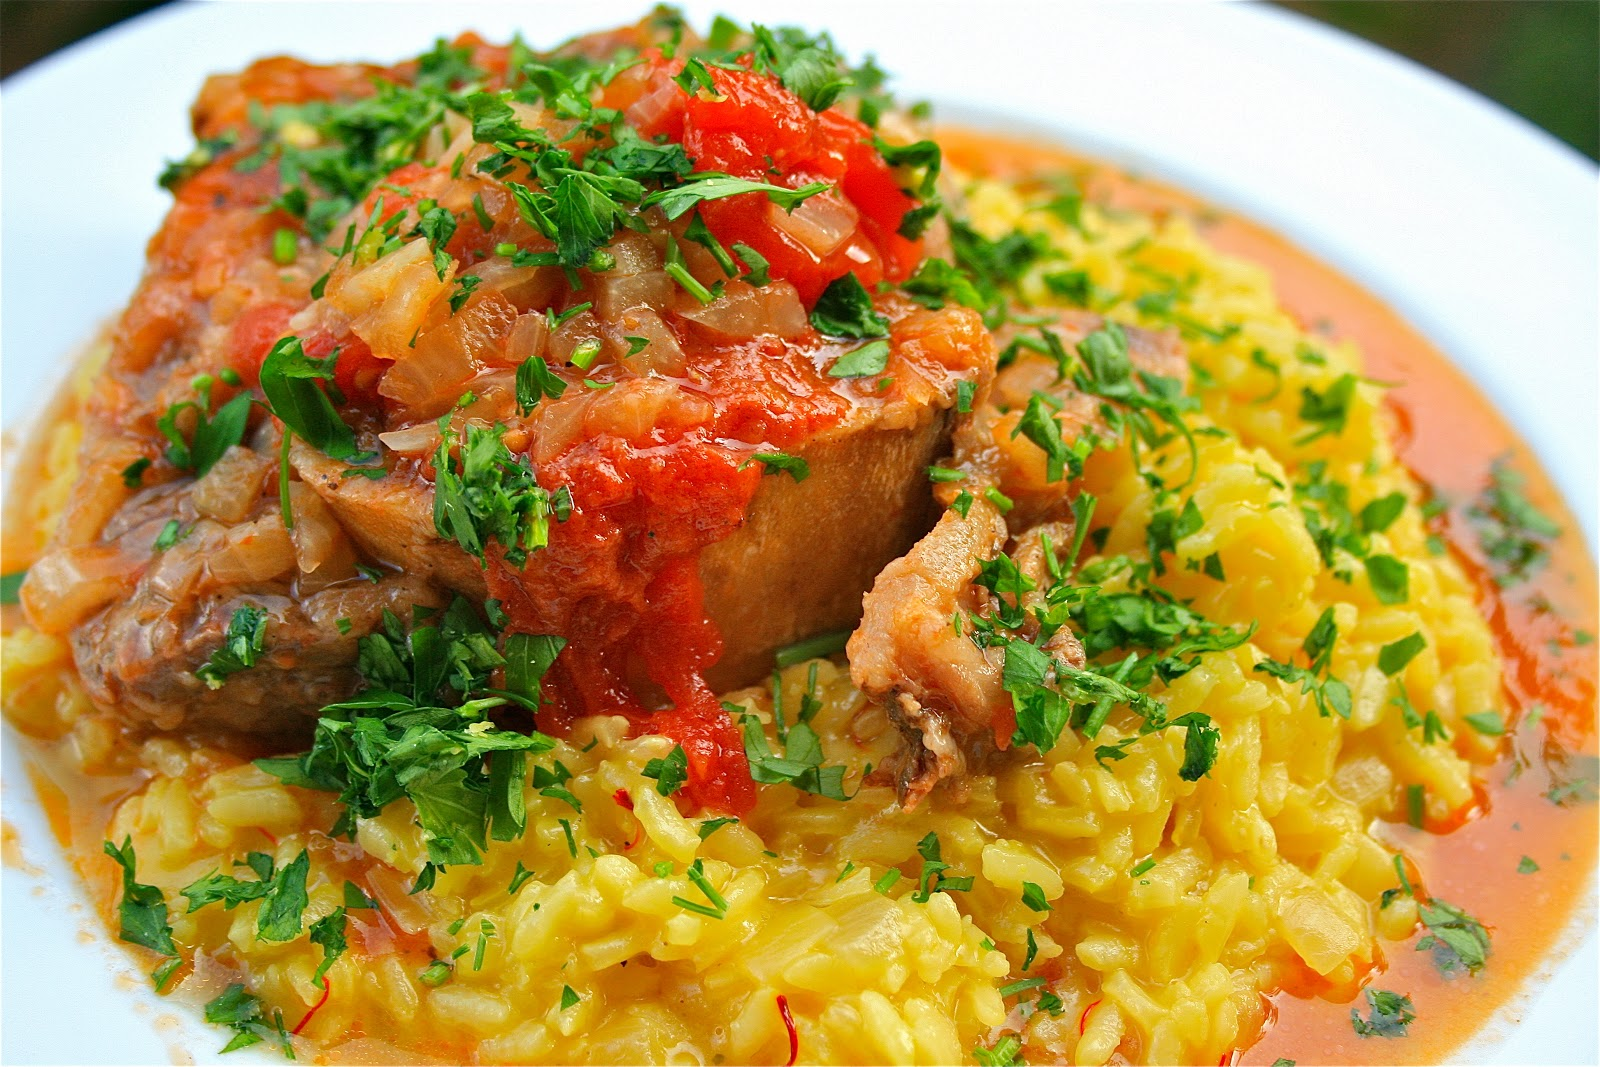 Johnny's Kitchen: Osso Bucco with Risotto alla Milanese